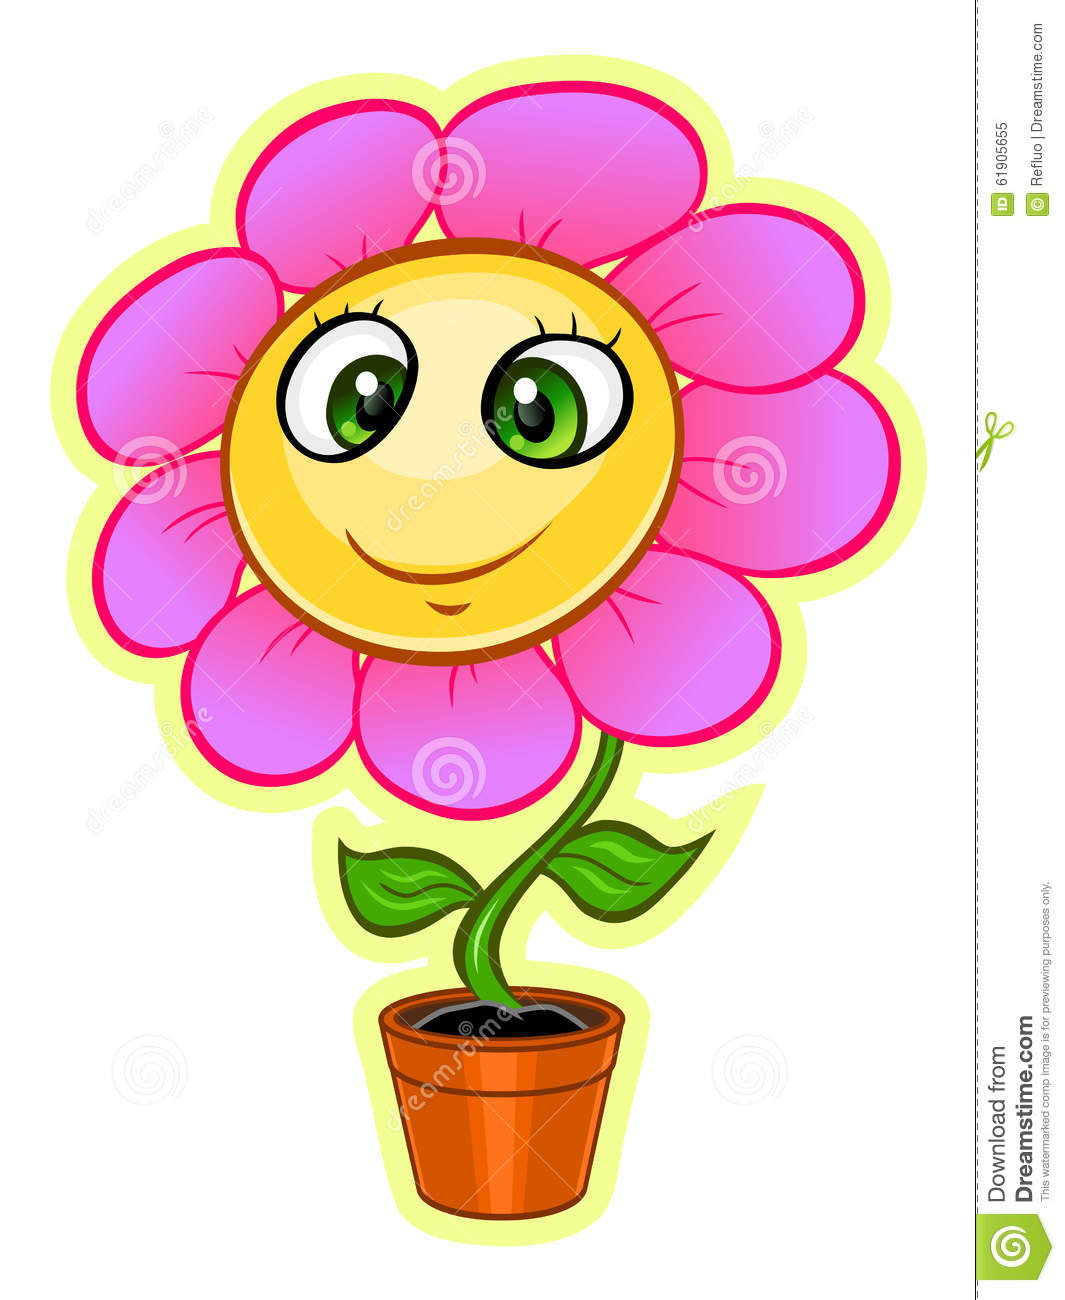 Cute cartoon pink flower growing from flowerpot.